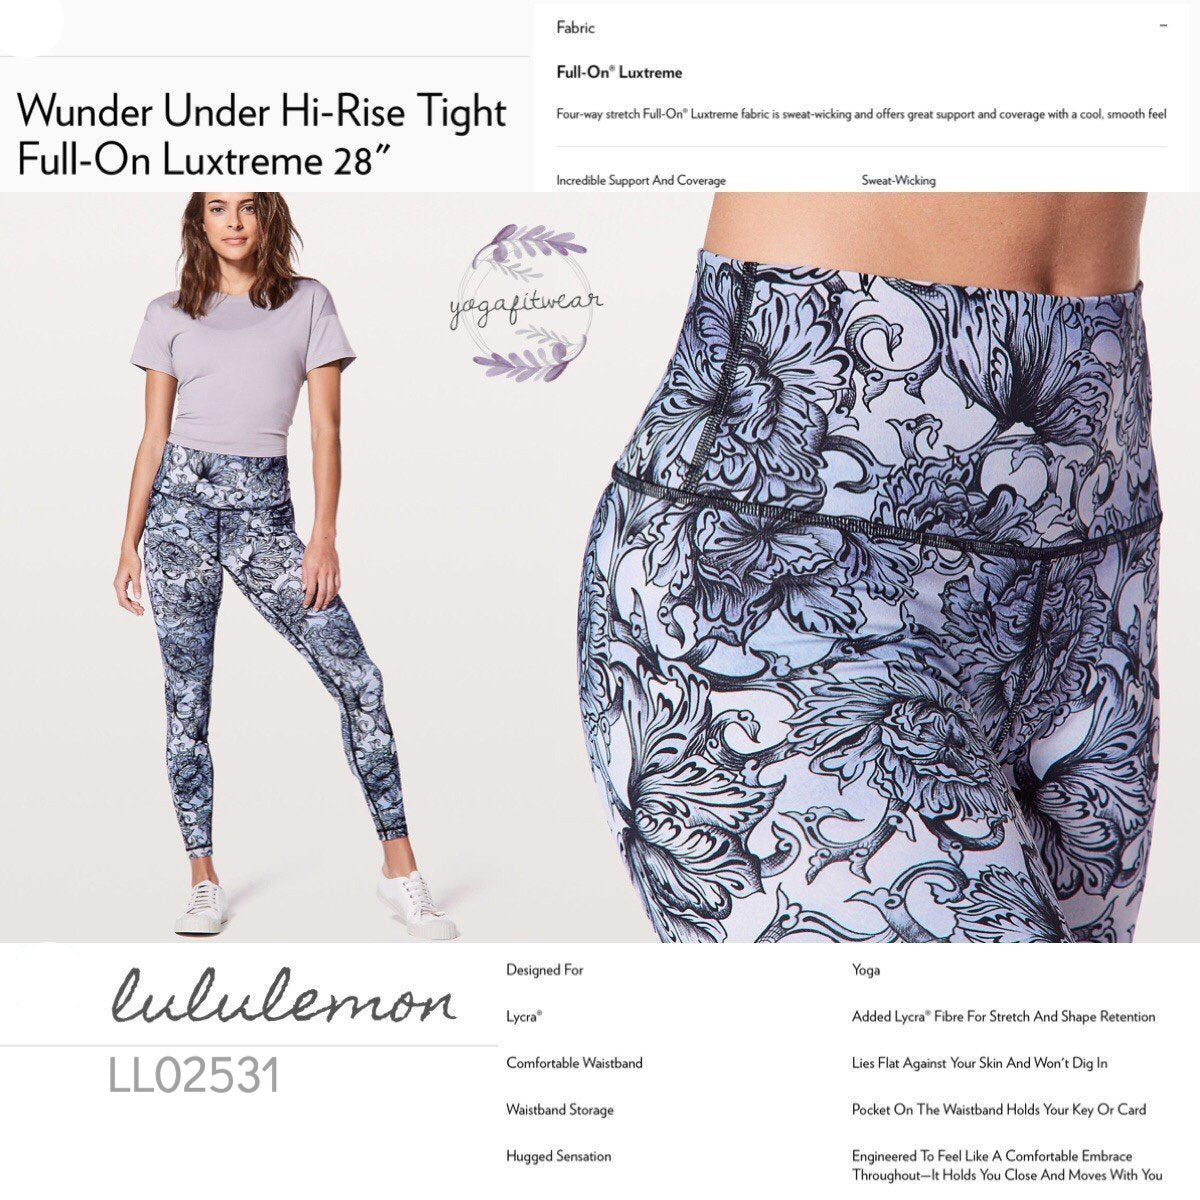 "Lululemon -  Wunder Under* Hi-rise Tight *Full-on Luxtreme28"" (Hanakotoba Starlight Multi) (LL02531)"